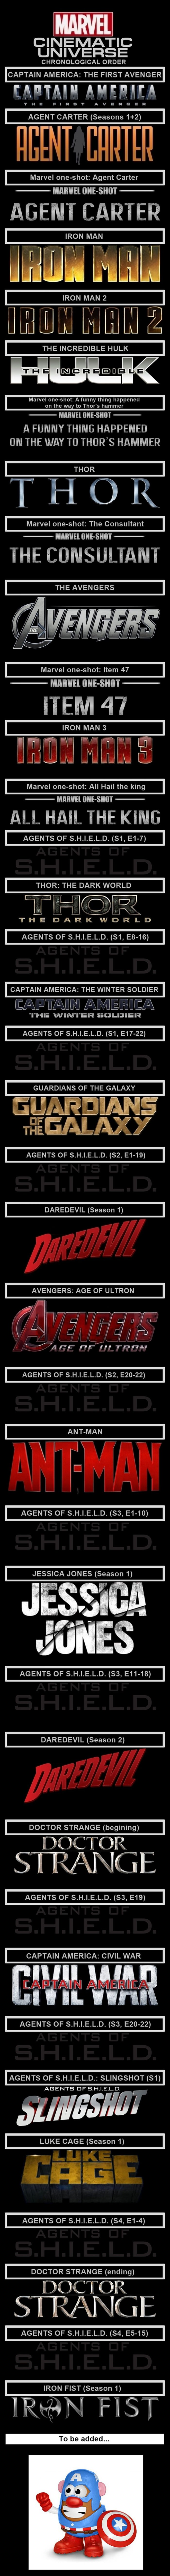 MCU Chronological viewing order. - 9GAG